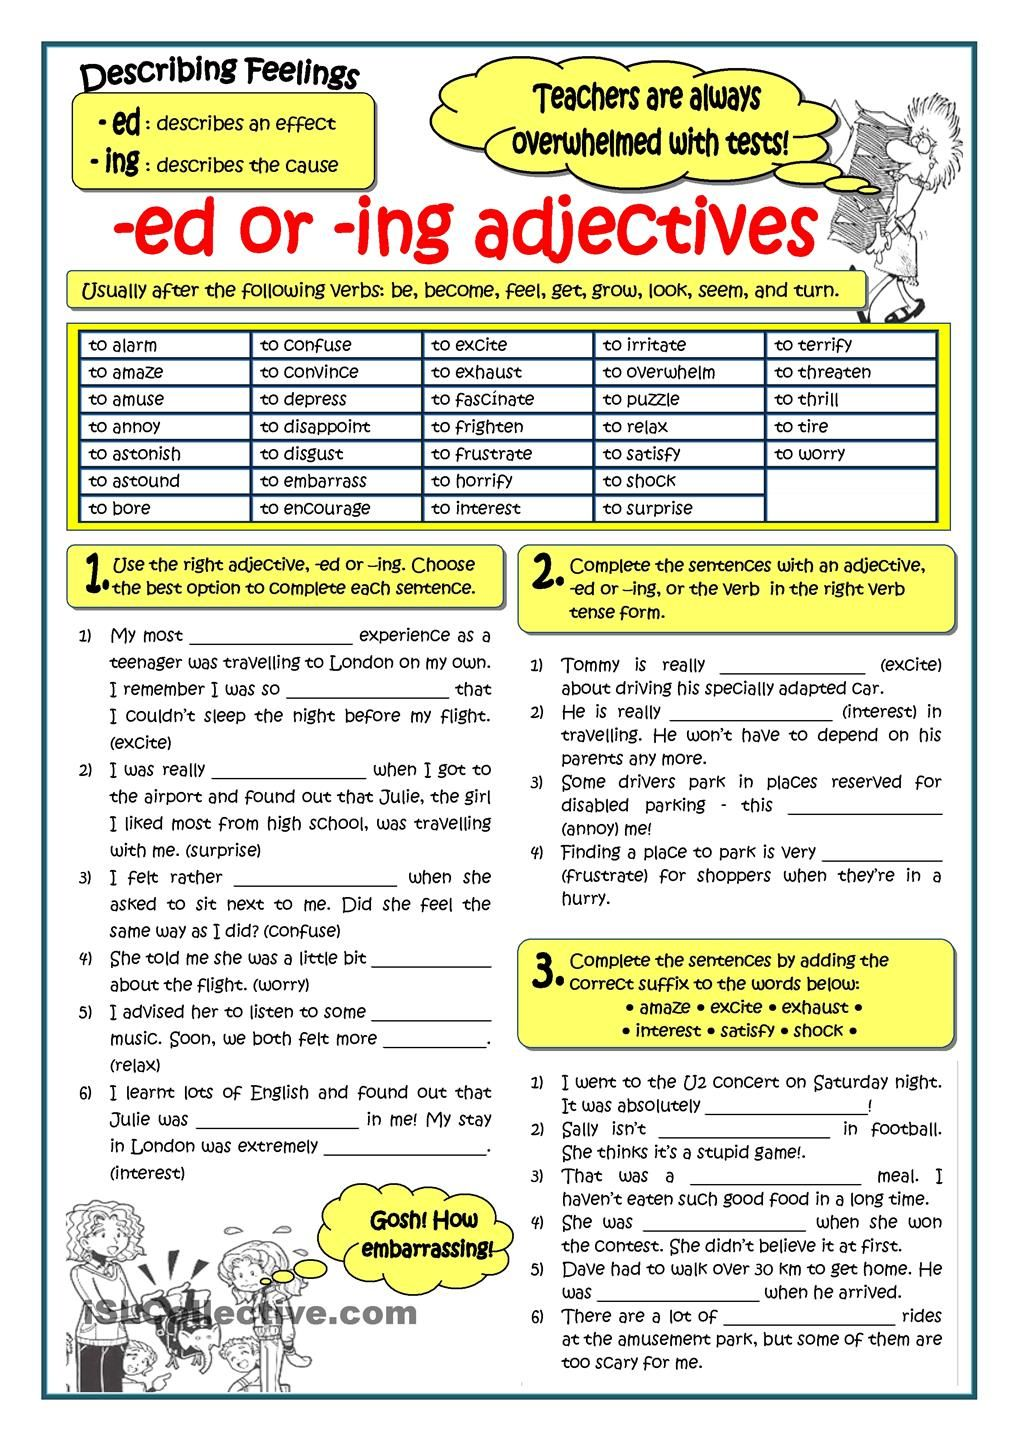 ADJECTIVES ENDING IN -ED OR -ING | english | Pinterest | Englisch ...